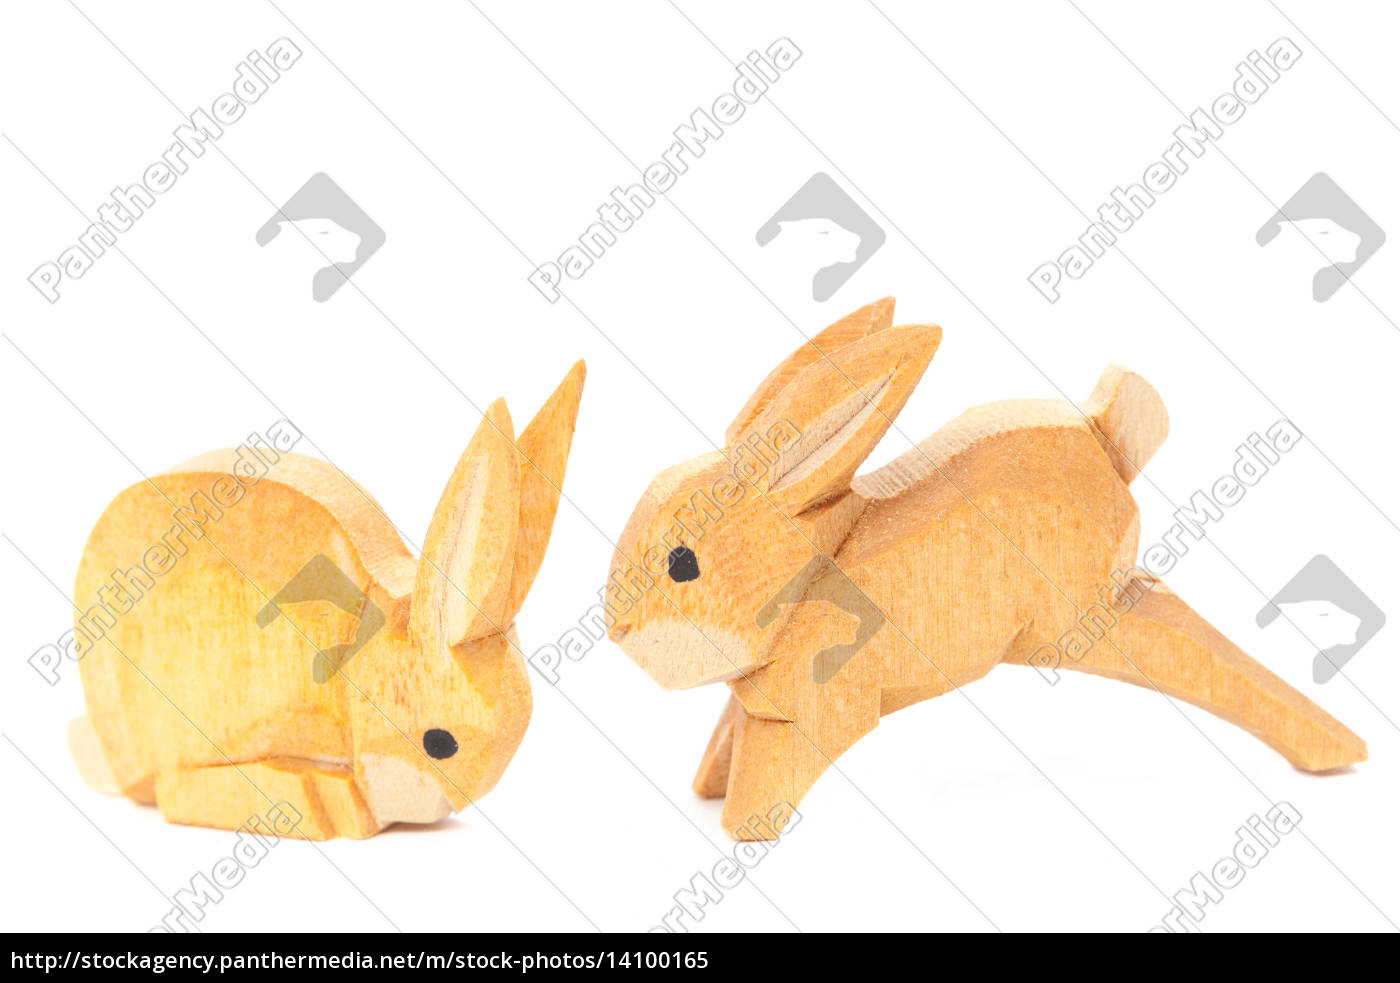 handmade, carved, easter, wooden, bunnies, isolated - 14100165